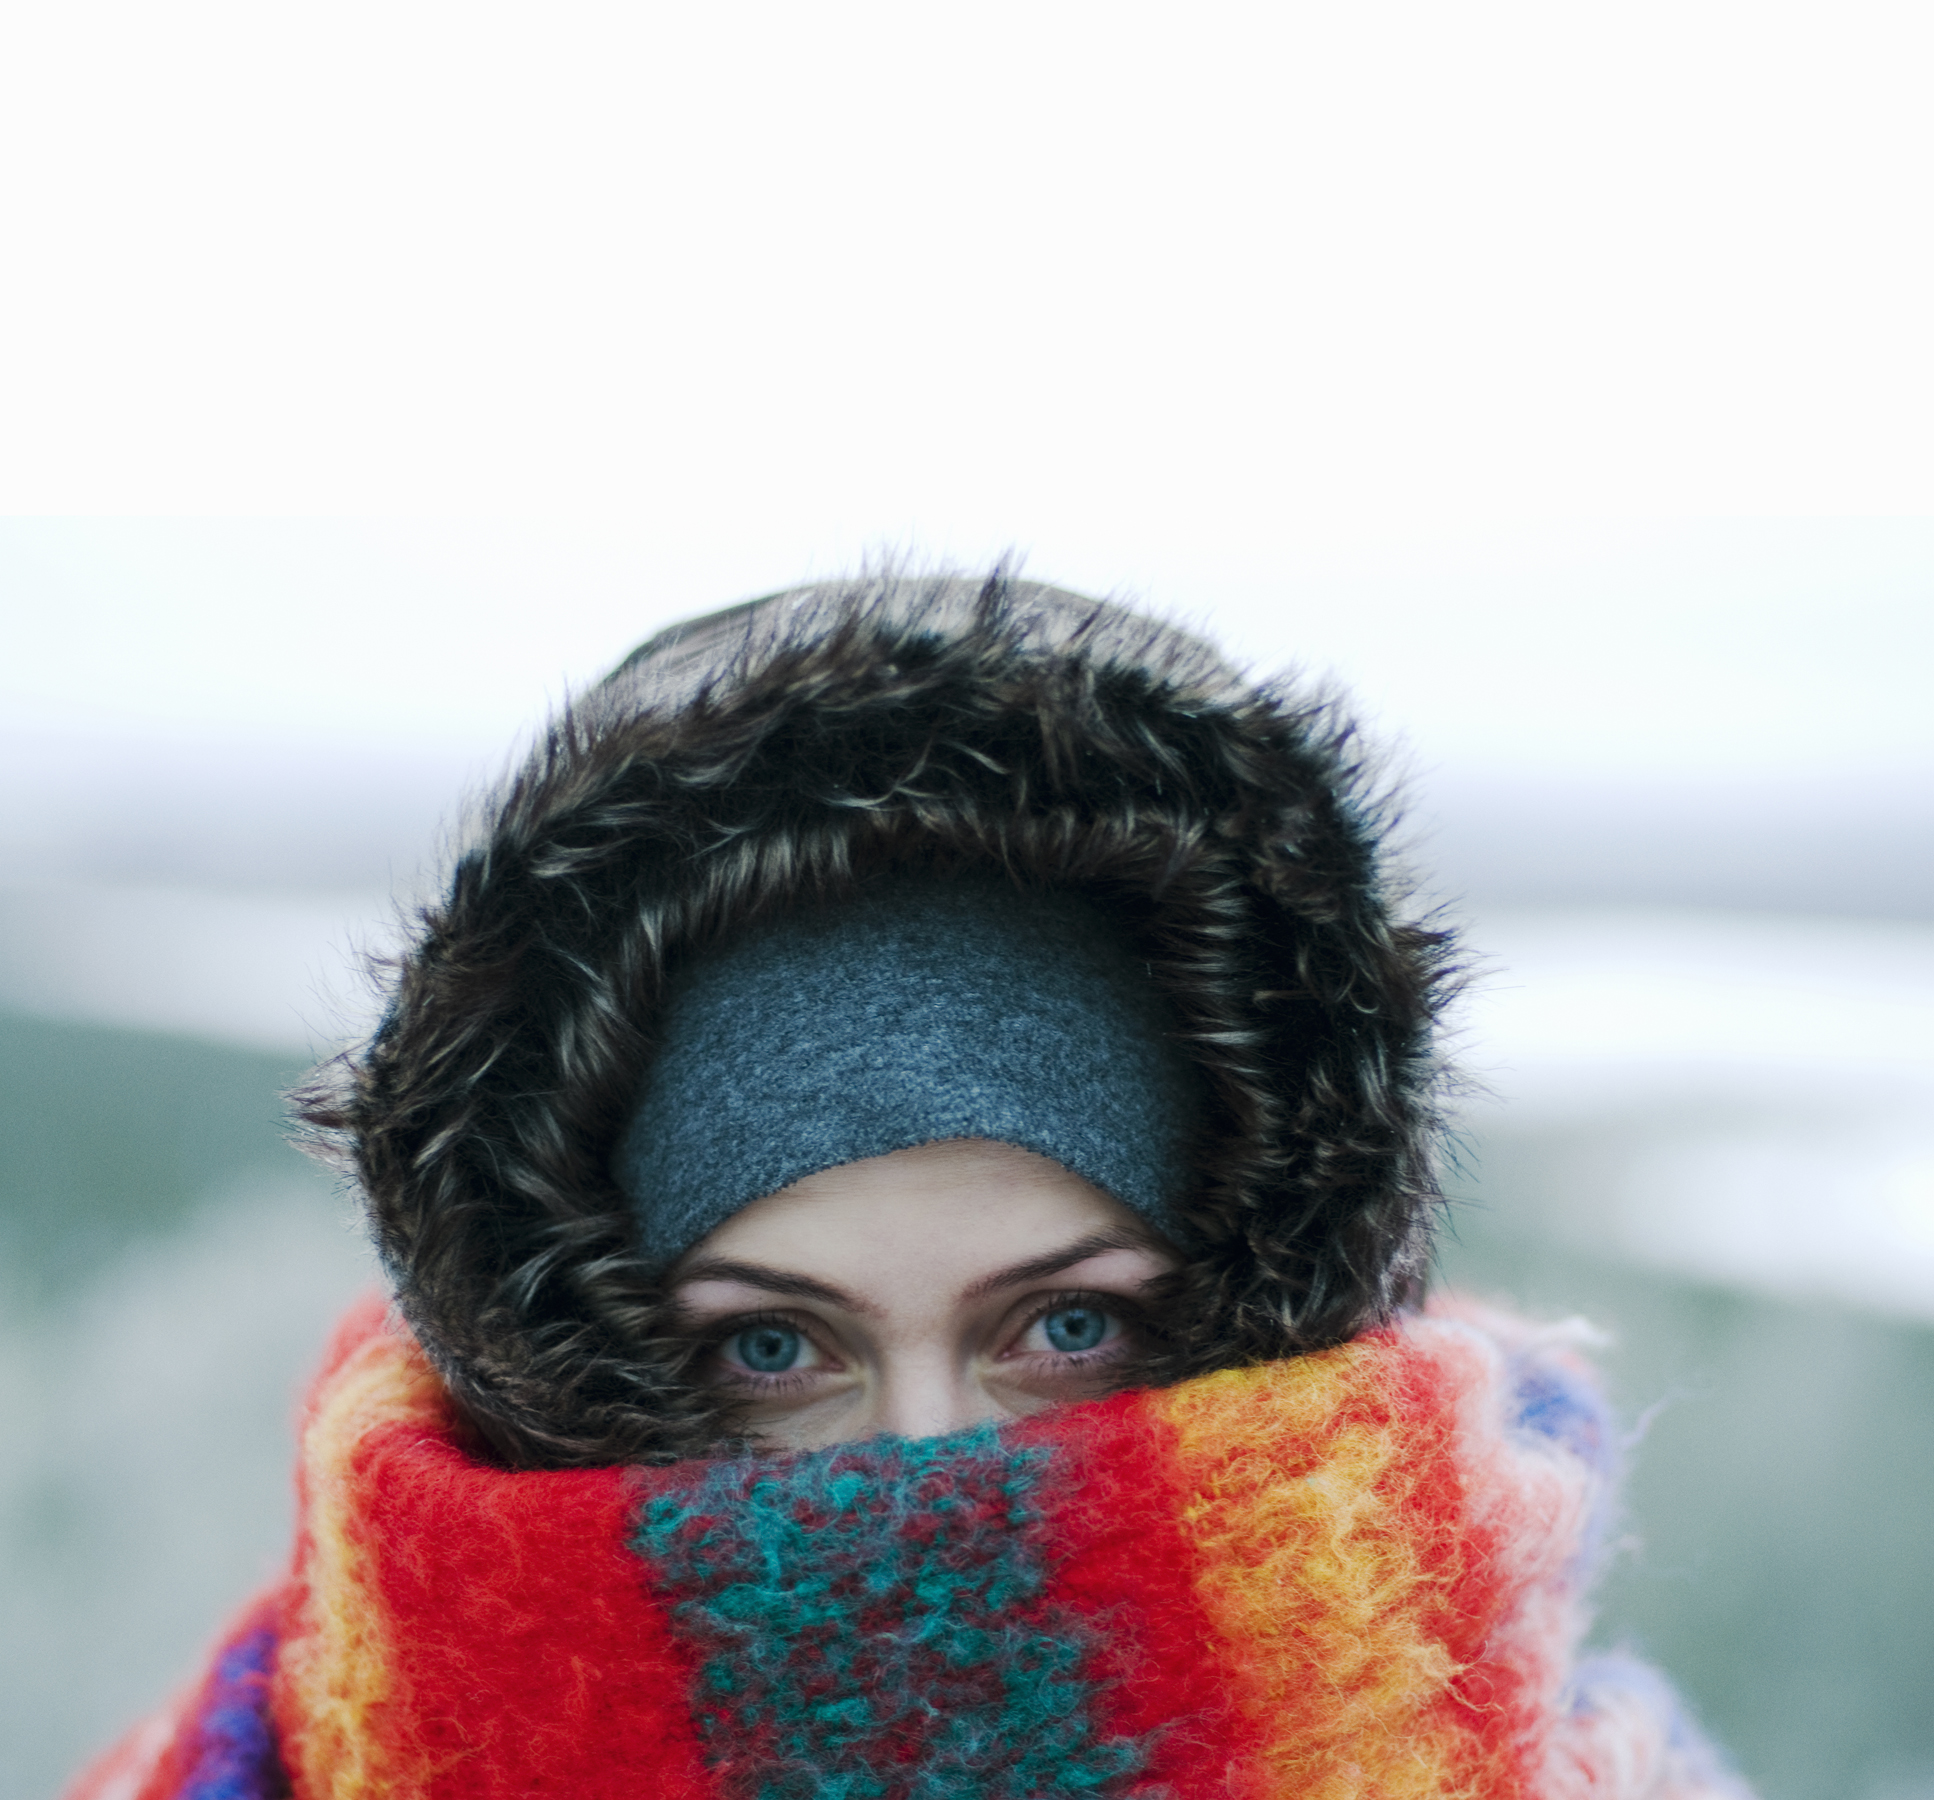 6 Tips for Staying Warm During a Polar Vortex